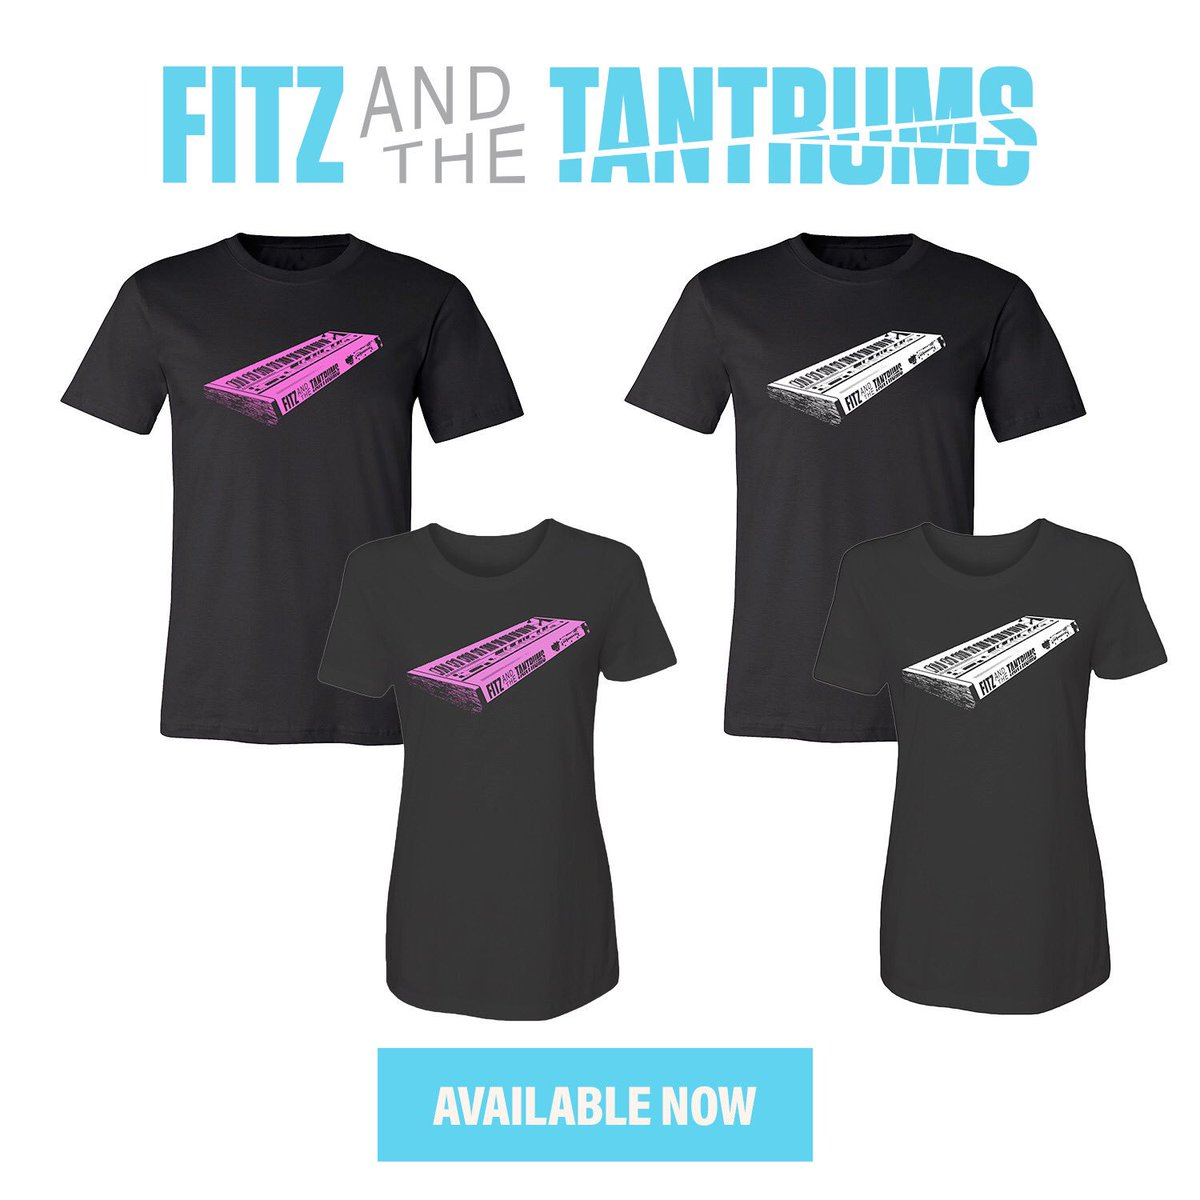 🚨 new tee design - available online today 🚨  End the summer in style with this new tee design by Fitz And The Tantrums keyboardist Jeremy Ruzumna! Inspired by vintage synths from the 80's, these designs are available in both unisex and ladies t-shirts -> https://t.co/BR8nxuw4GC